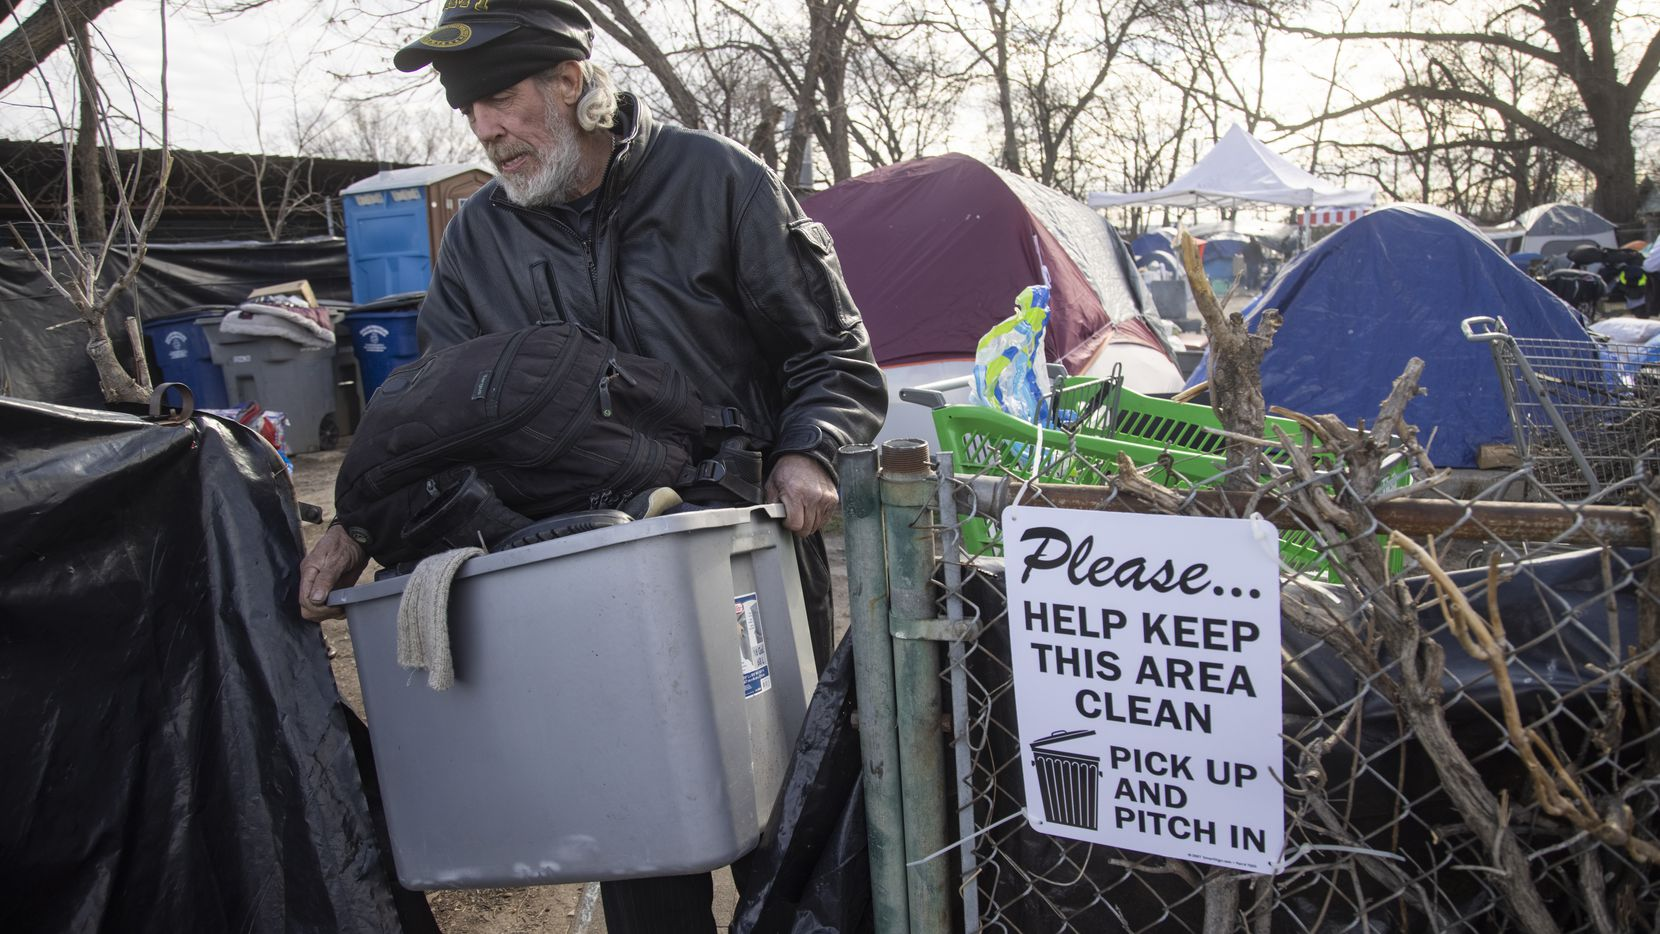 Arthur Stebbins takes some of his belongings out of Camp Rhonda, a homeless encampment located on a lot along I-45, on Friday, Feb. 5, 2021 in South Dallas. Dallas City offered the residents the ability to stay at the Hotel Miramar. Last week, city officials sent a notice to the owner of the property, Johnny Aguinaga, stating that the lot needed to be empty by Feb. 6. (Juan Figueroa/ The Dallas Morning News)